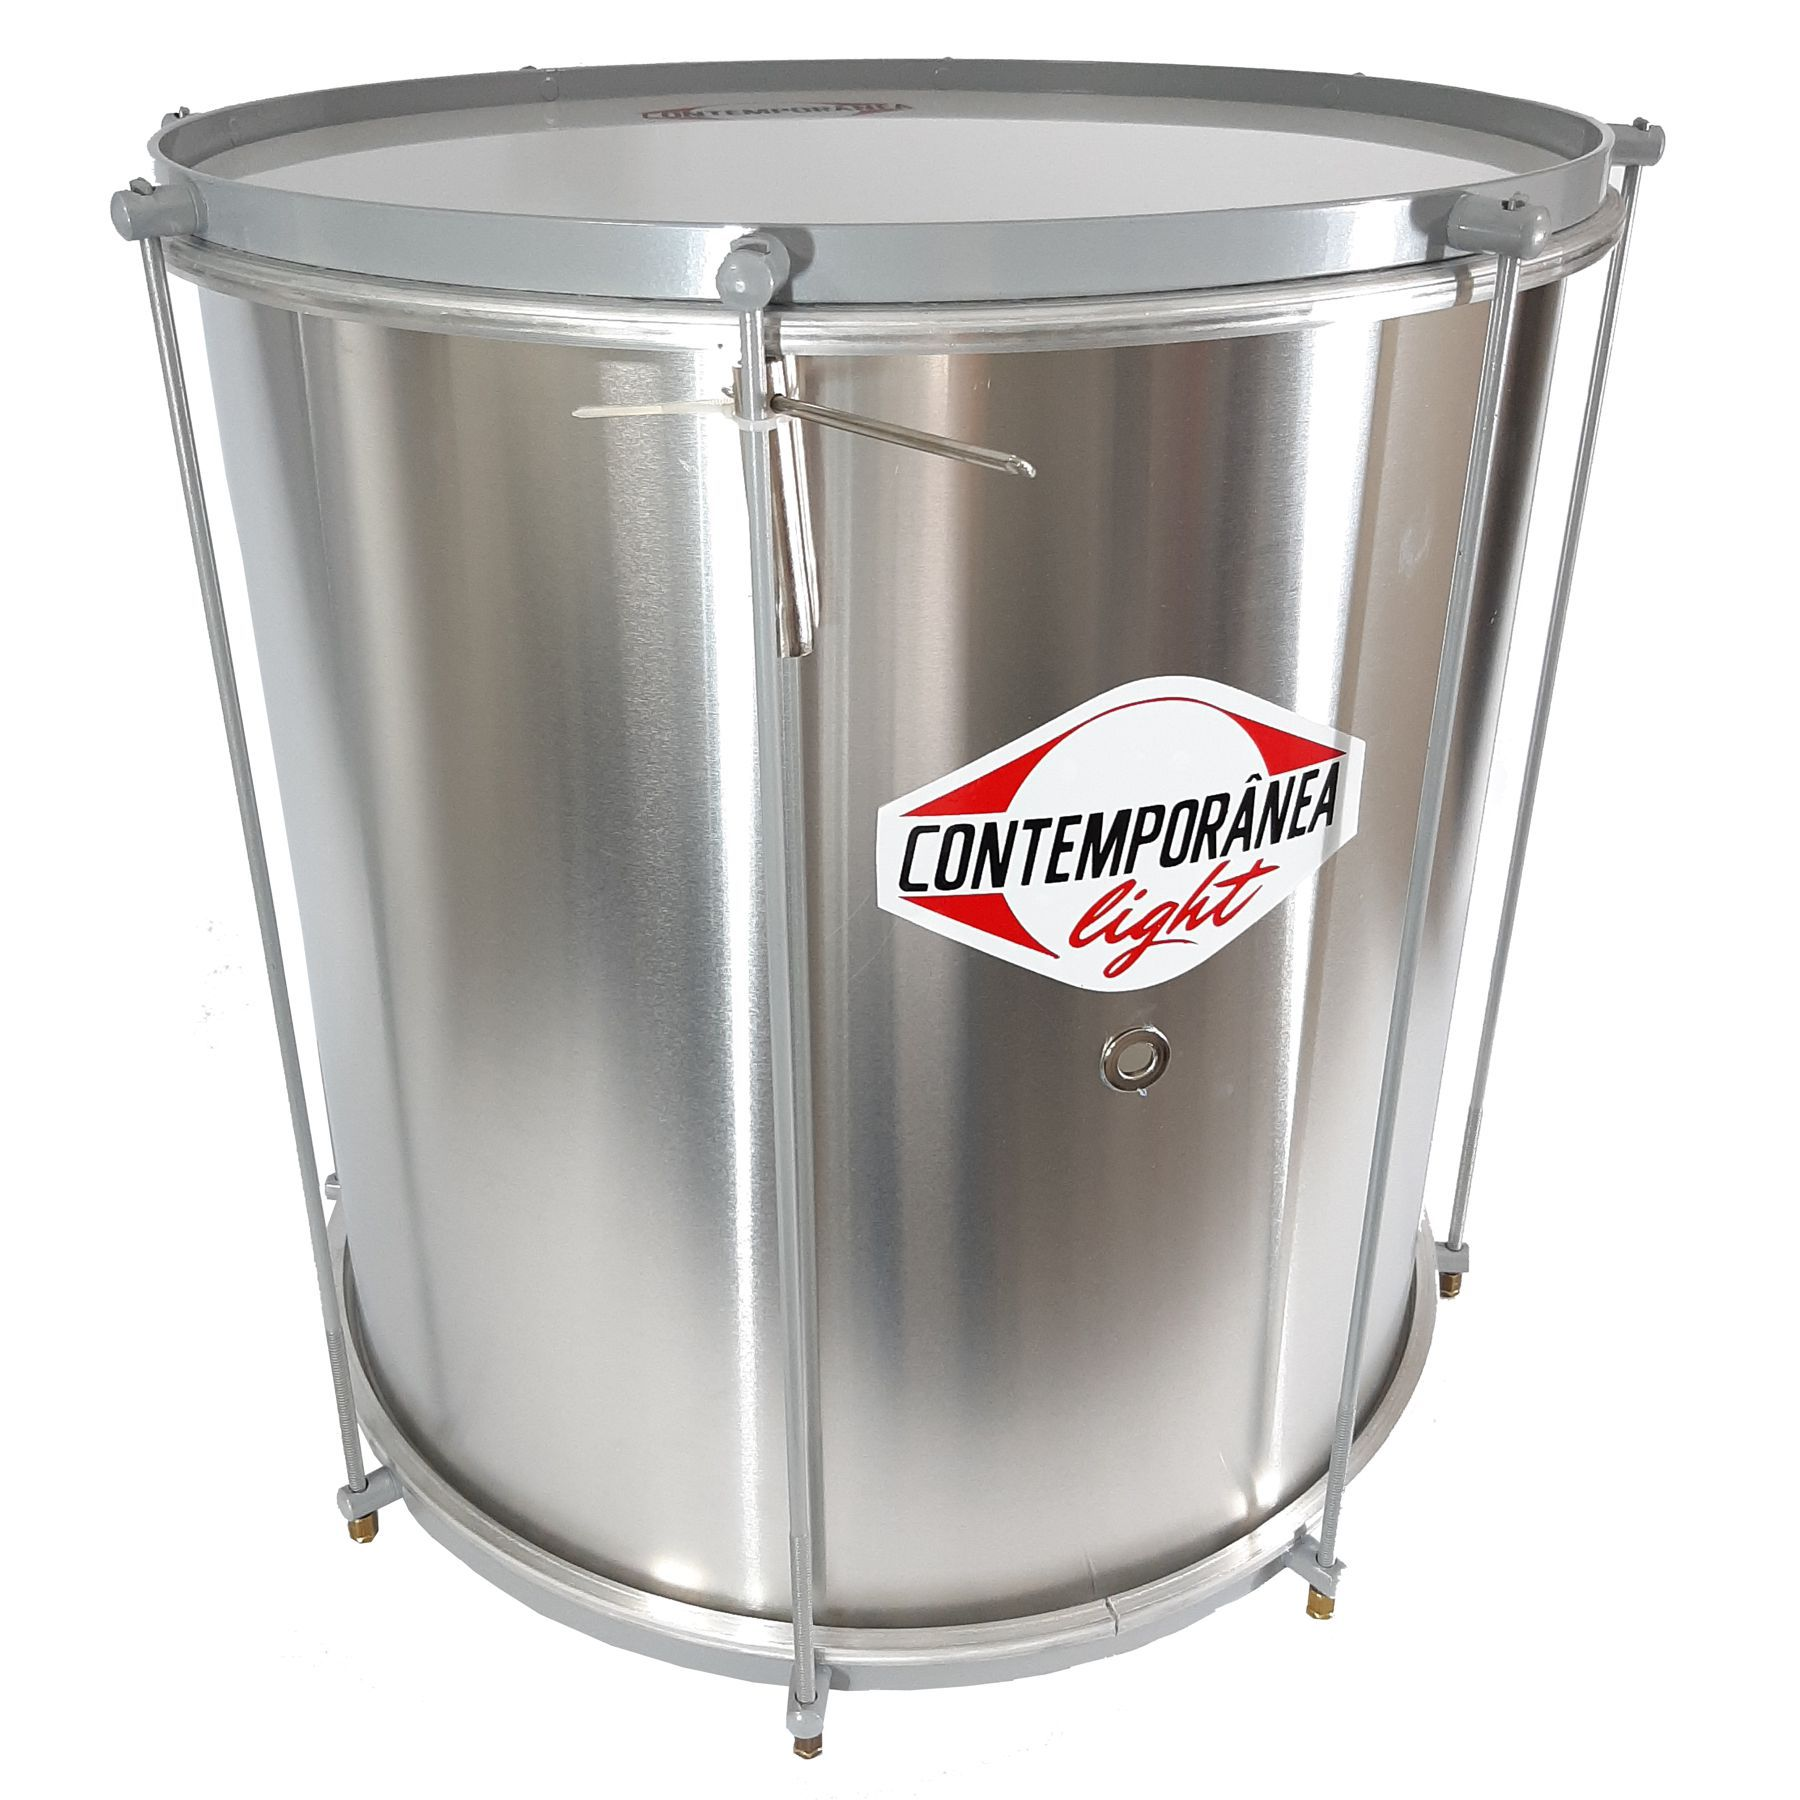 Surdo Contemporanea Light 159Lt 18 Aluminio Nylon